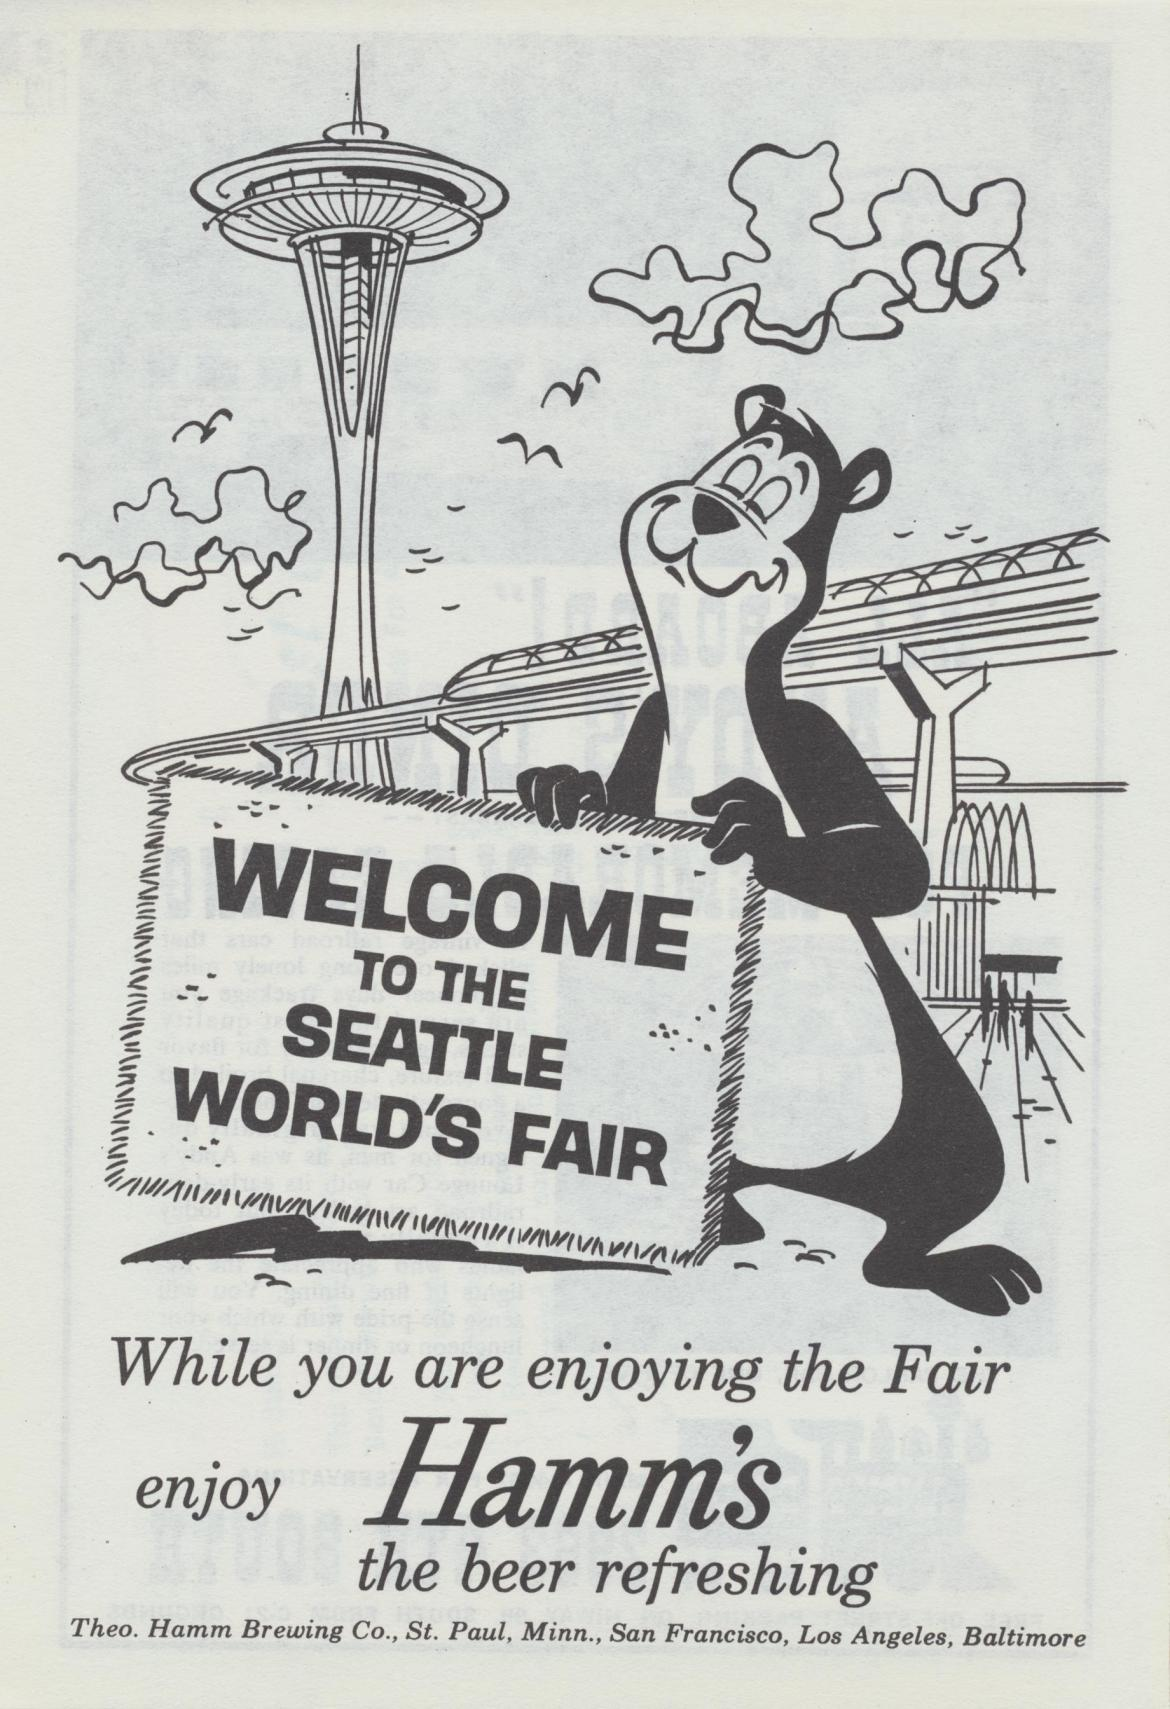 1962 Seattle World's Fair: Day 2 – Welcome to the Seattle World's Fair from Hamm's